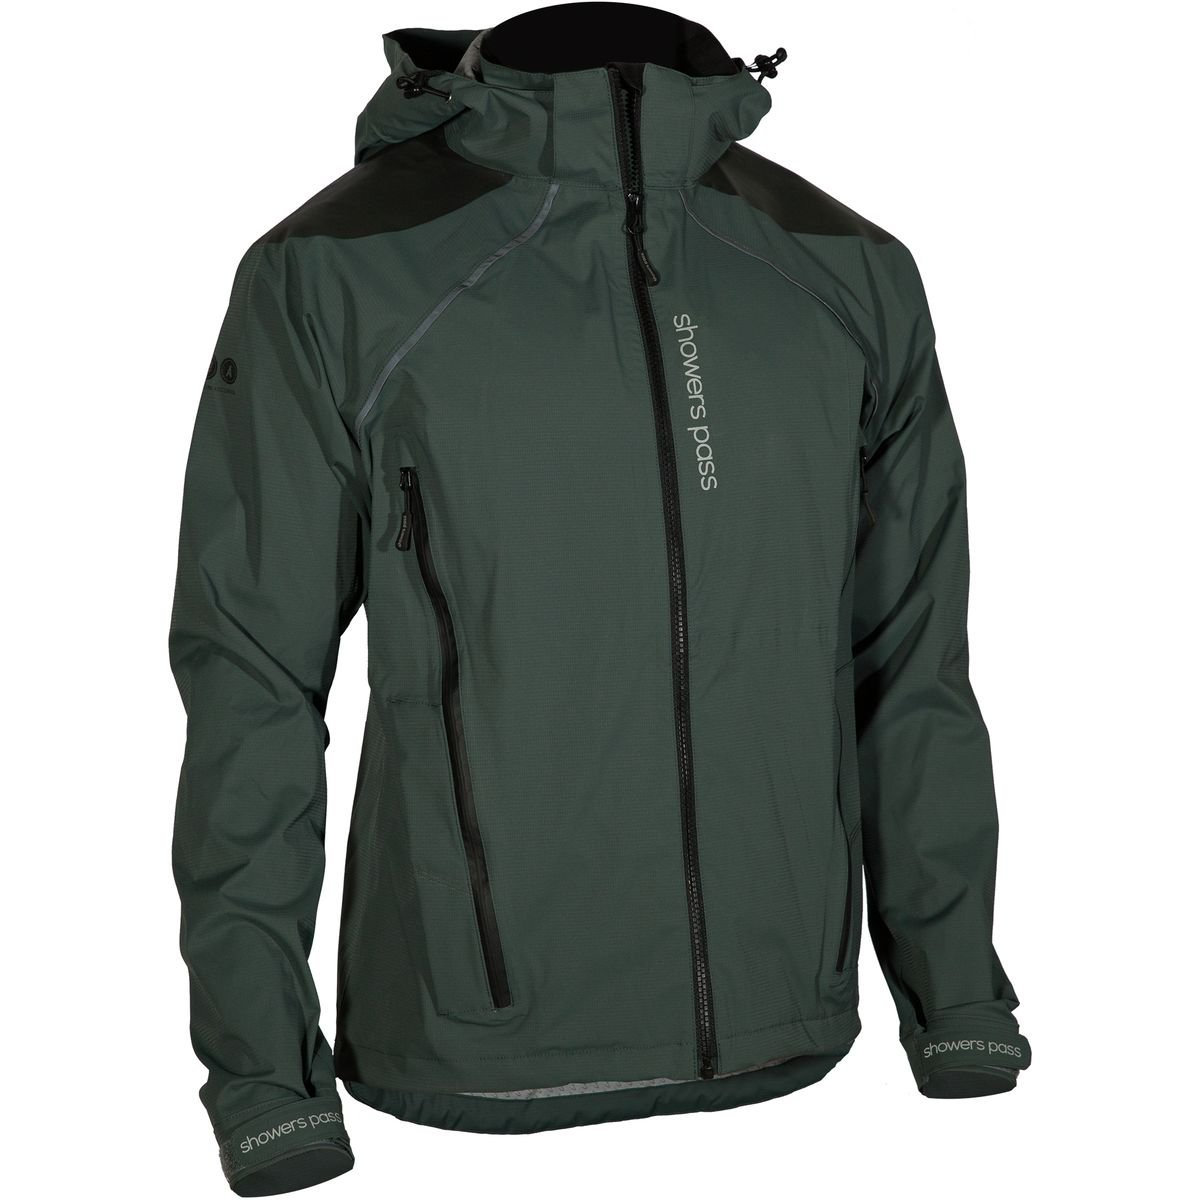 Showers Ride Small Pass Imba Jacket – – Men Men 's B0767D9Y5K Small|Night Ride Night Ride Small, 御宿町:f1b6ee5c --- cognitivebots.ai